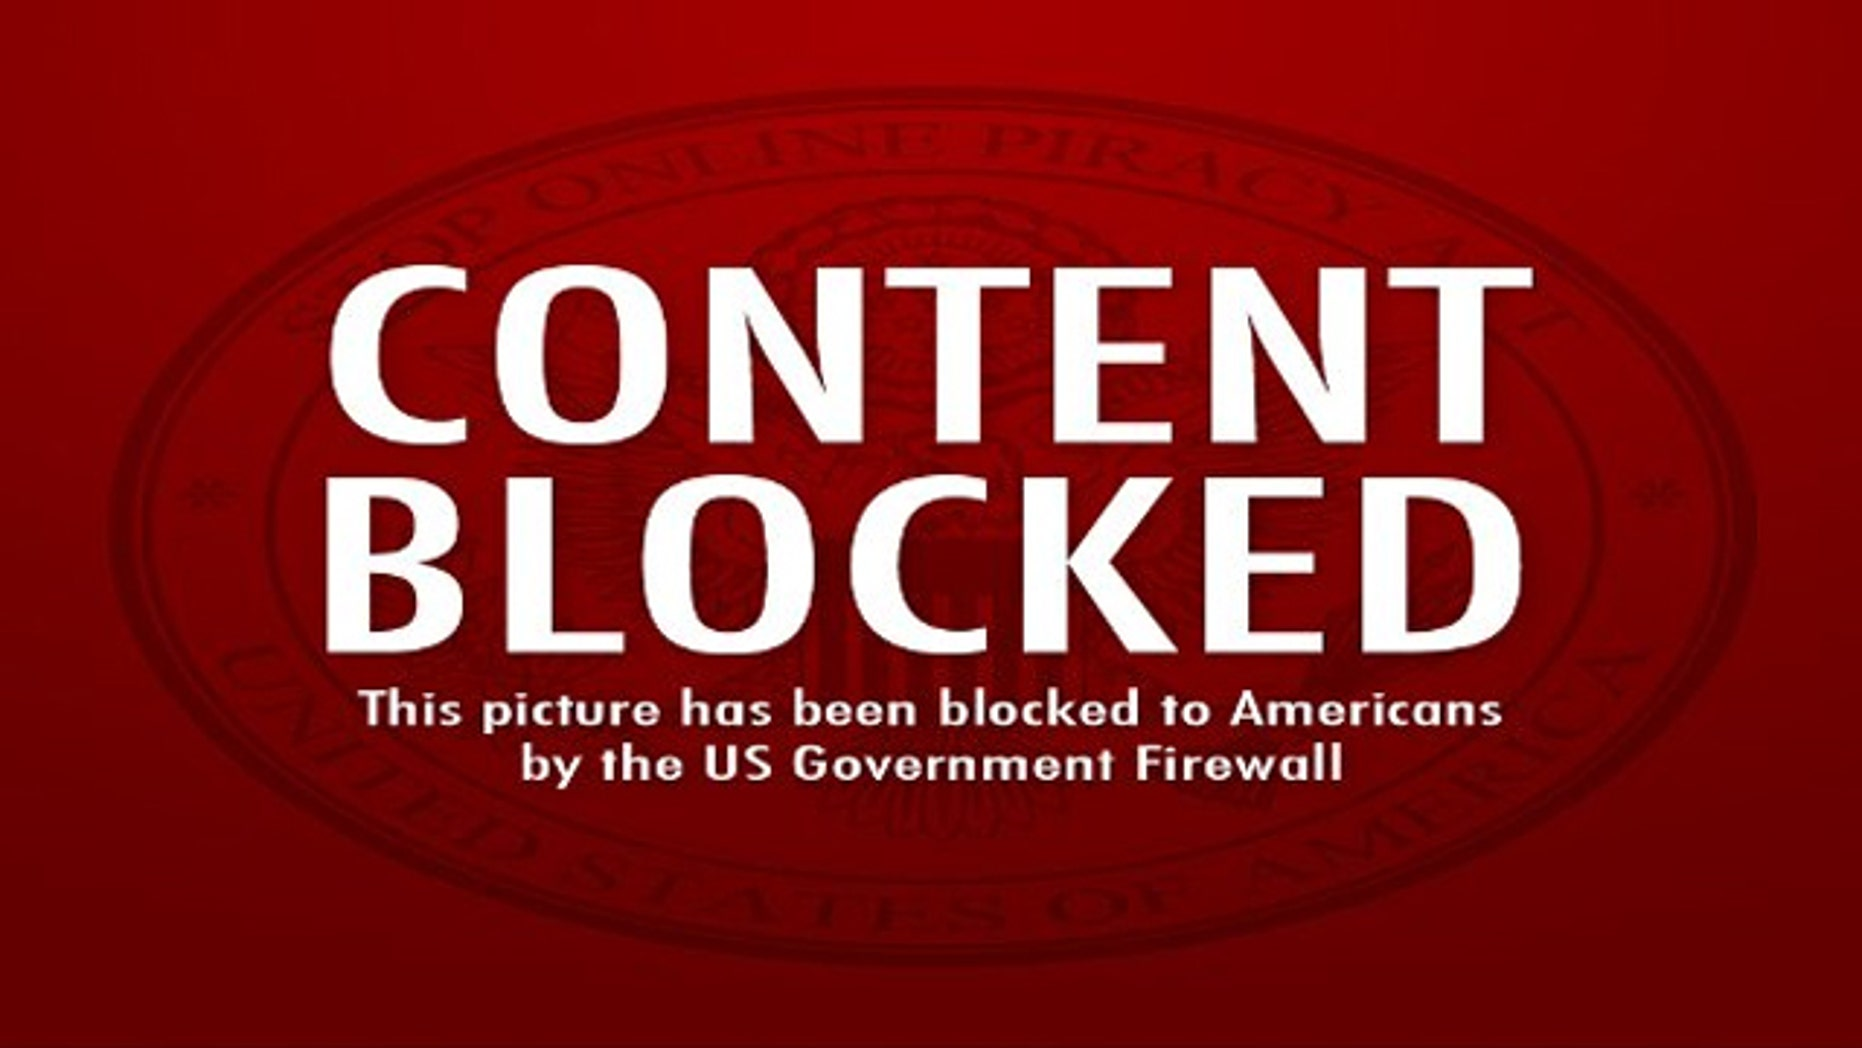 Anti-SOPA pop-up banners online protest a law that many argue will dramatically alter the Internet.